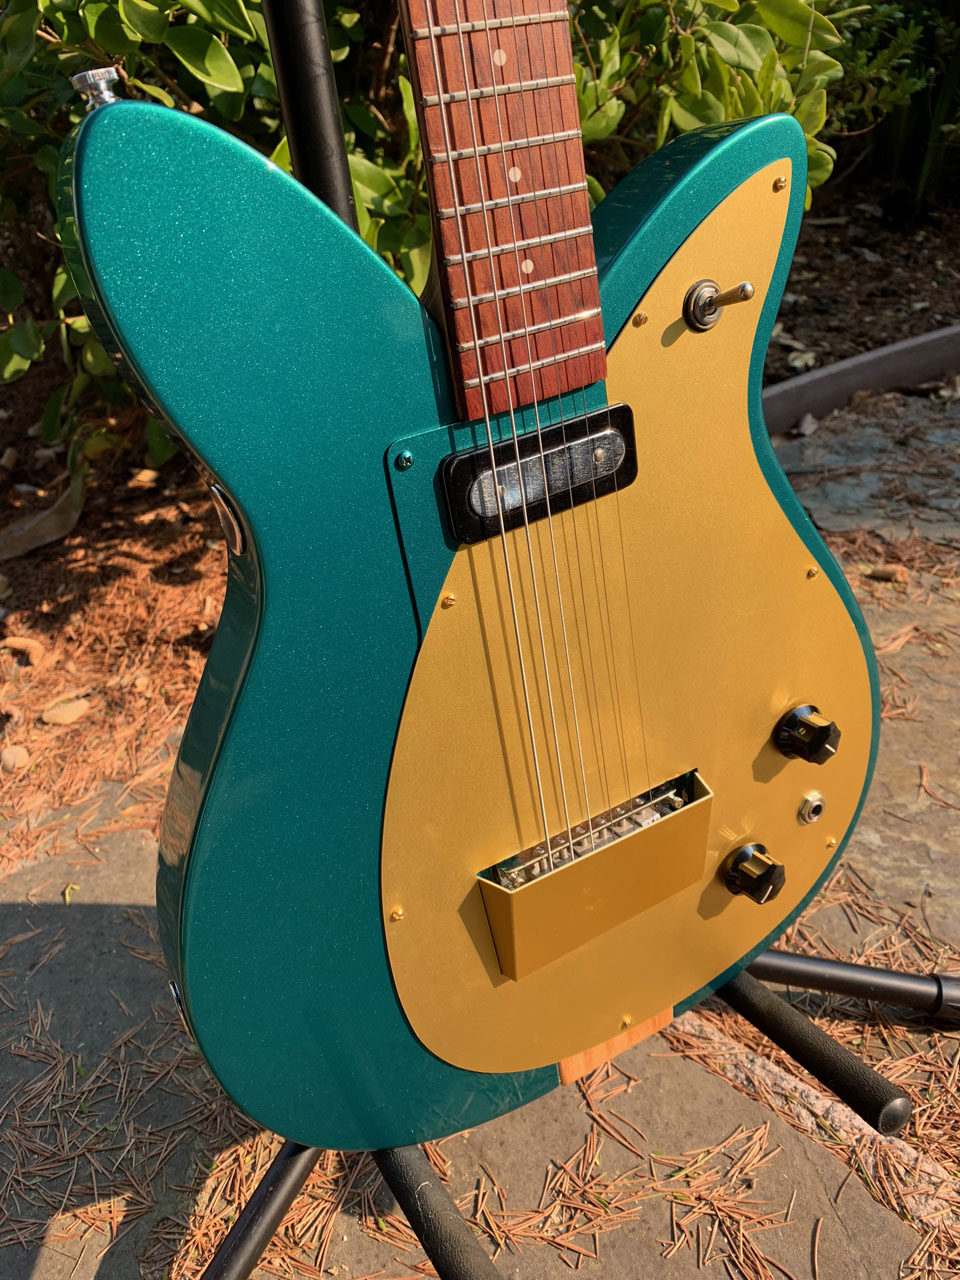 1956 COMBO 400 IN CLOVERFIELD GREEN